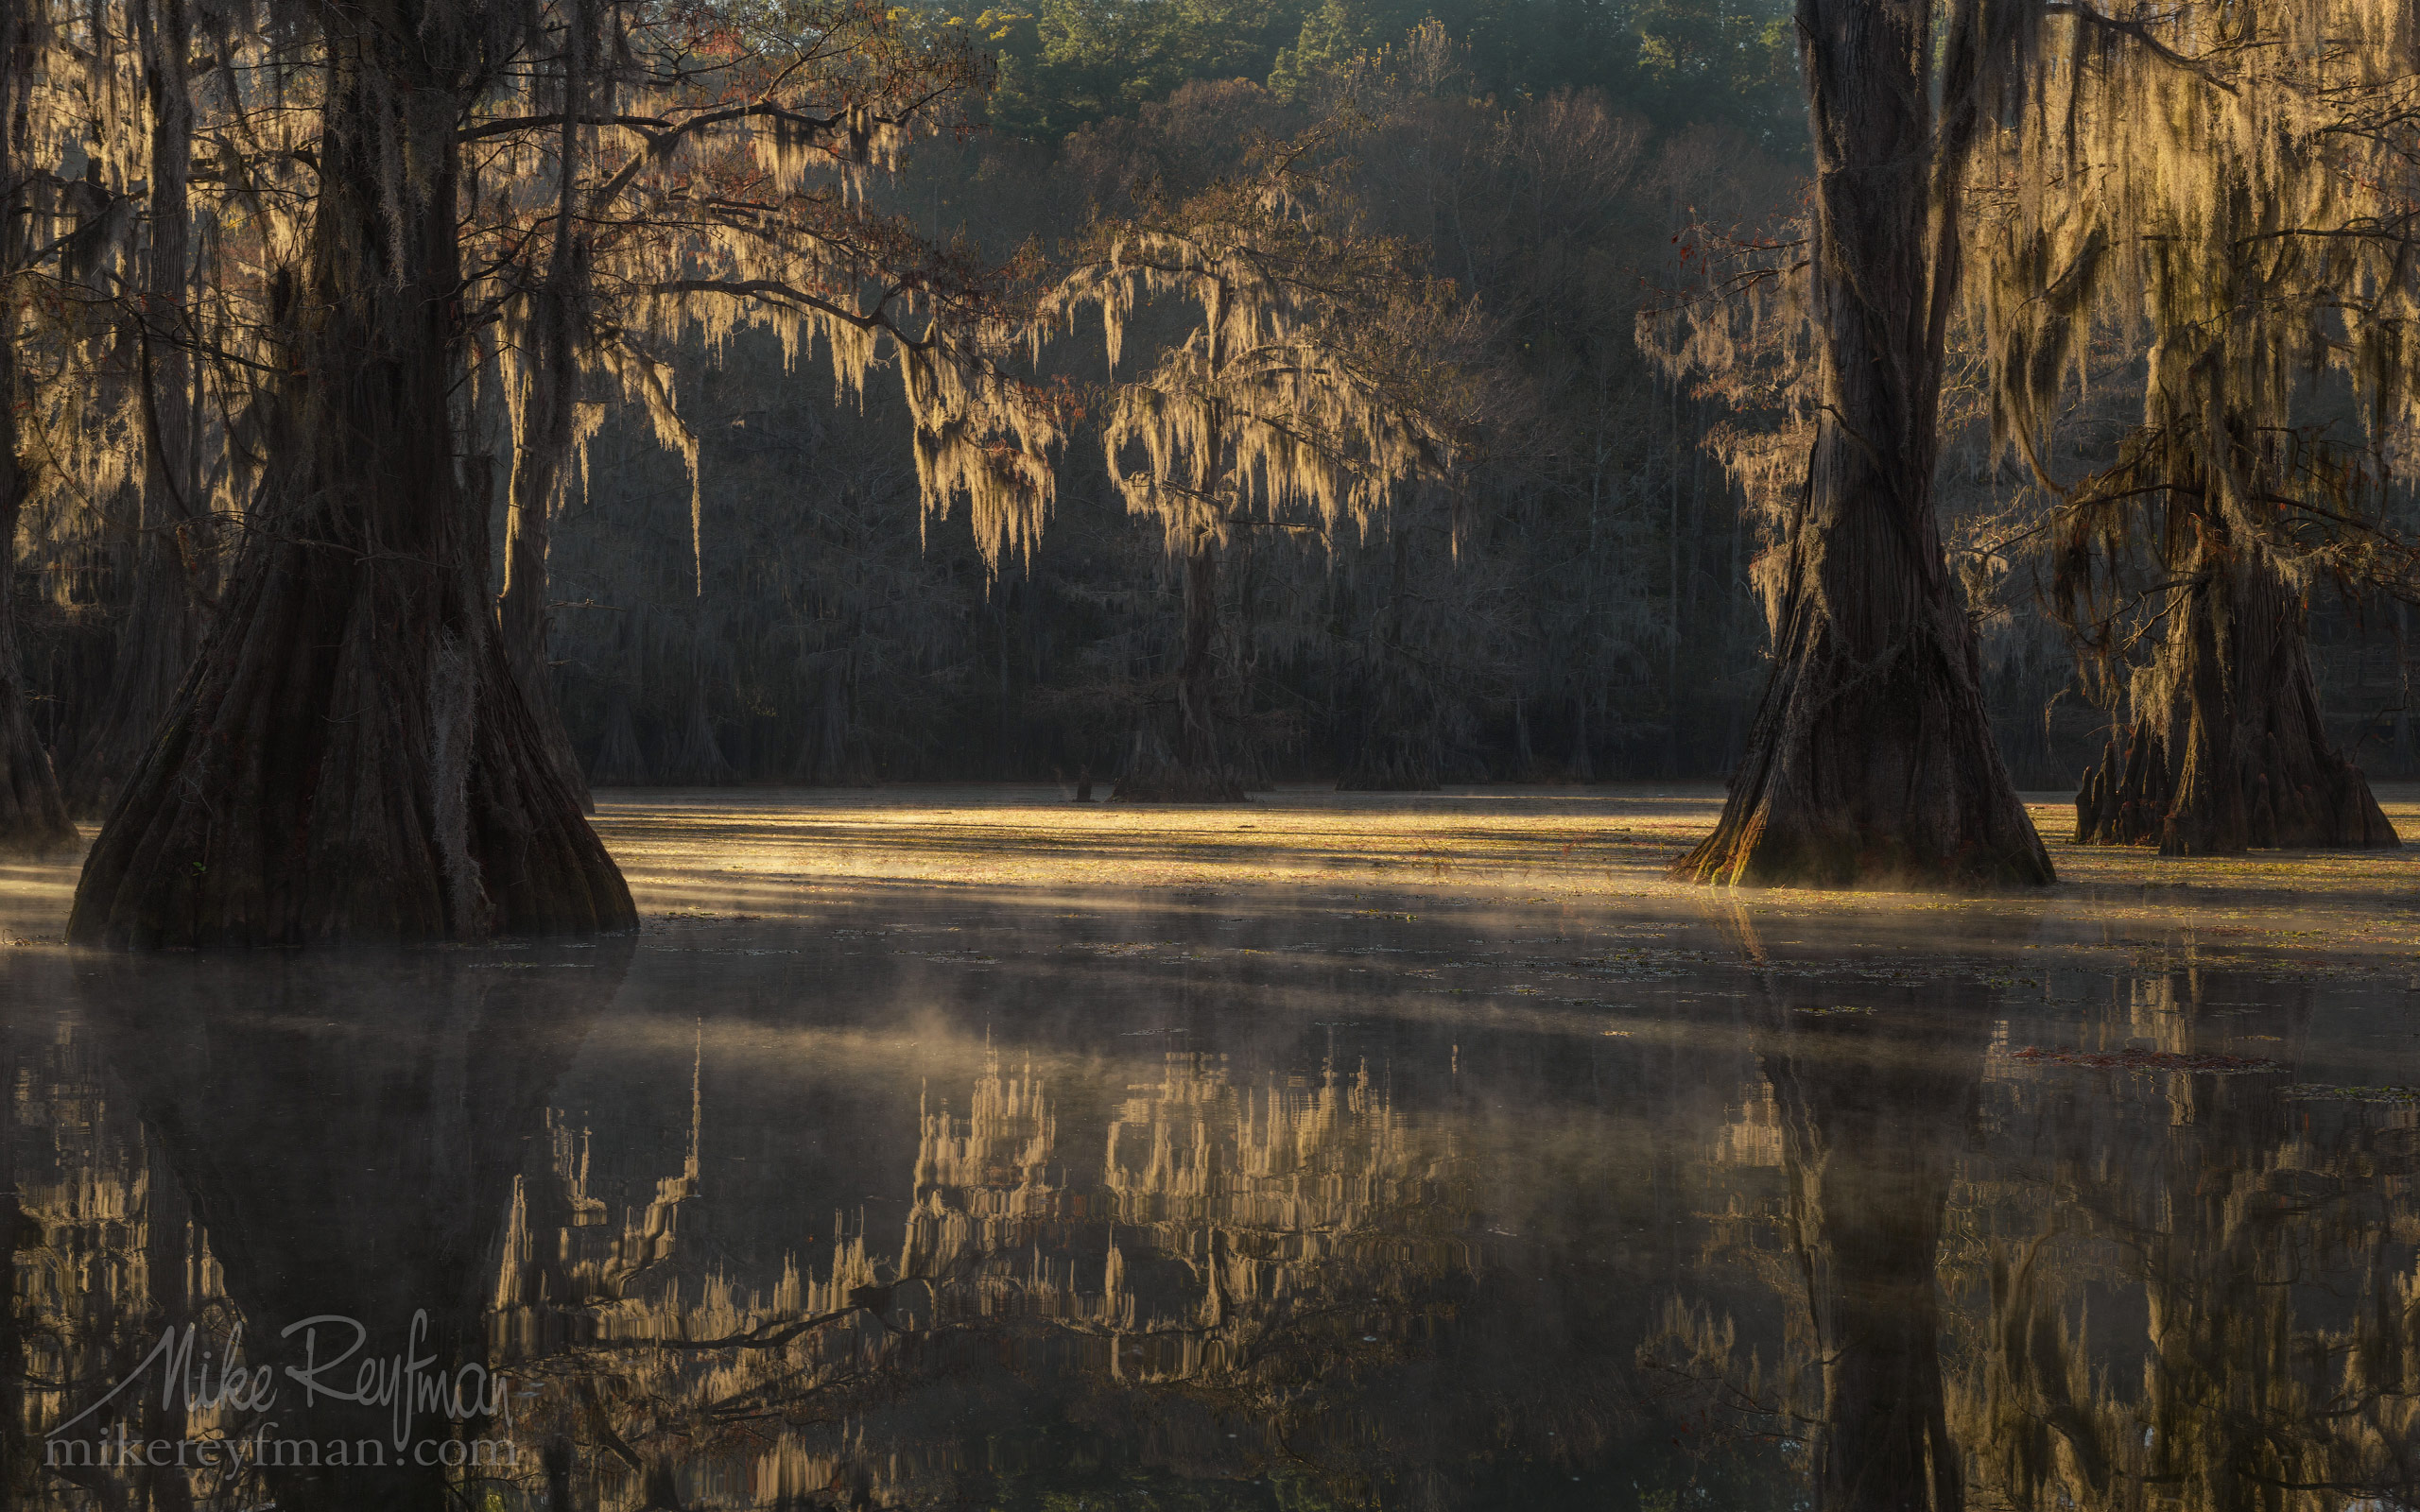 Bald Cypress trees in the swamp. Foggy morning on Caddo Lake, Texas, US 043-LT1-50A3625.jpg - Bold Cypress and Tupelo Trees in the swamps of Atchafalaya River Basin. Caddo, Martin and Fousse Lakes. Texas/Louisiana, USA. - Mike Reyfman Photography